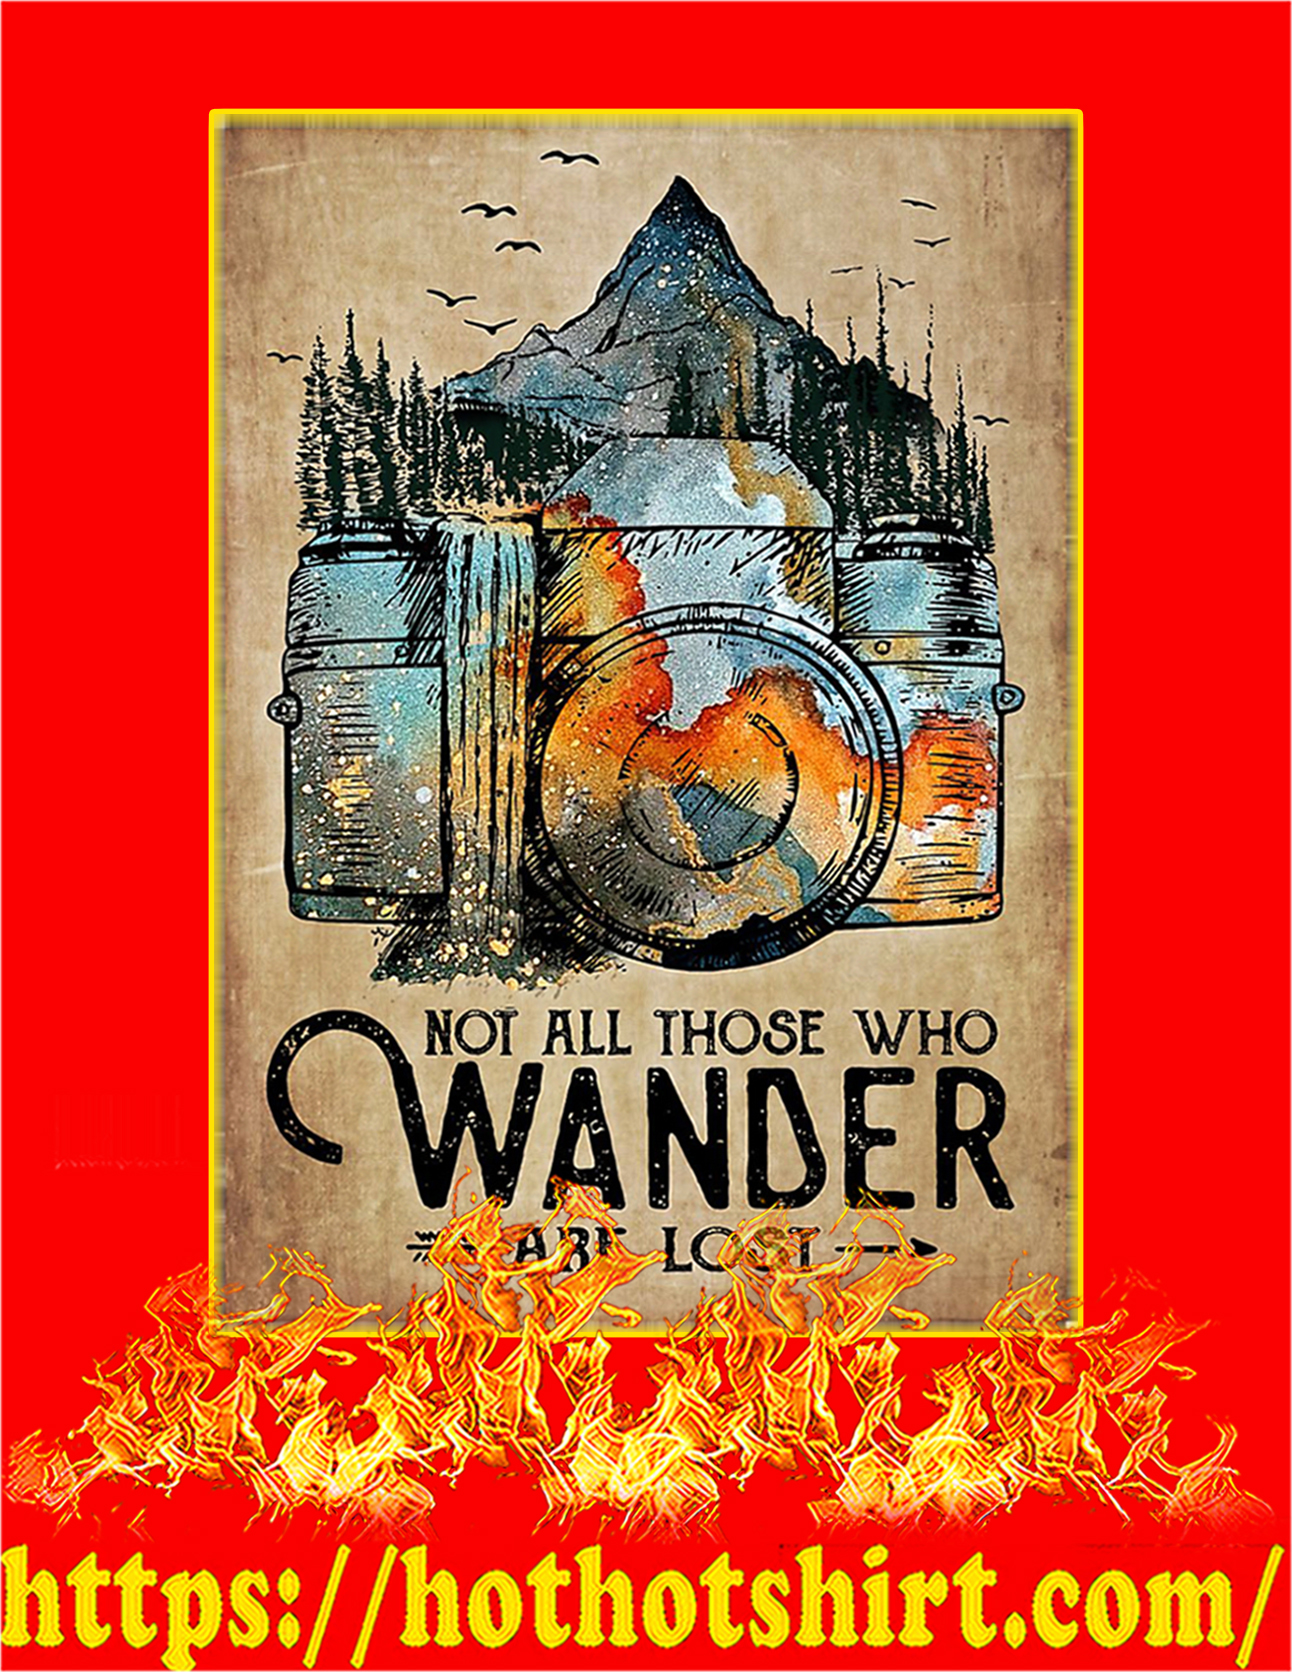 Photographer not all those who wander are lost poster - A3